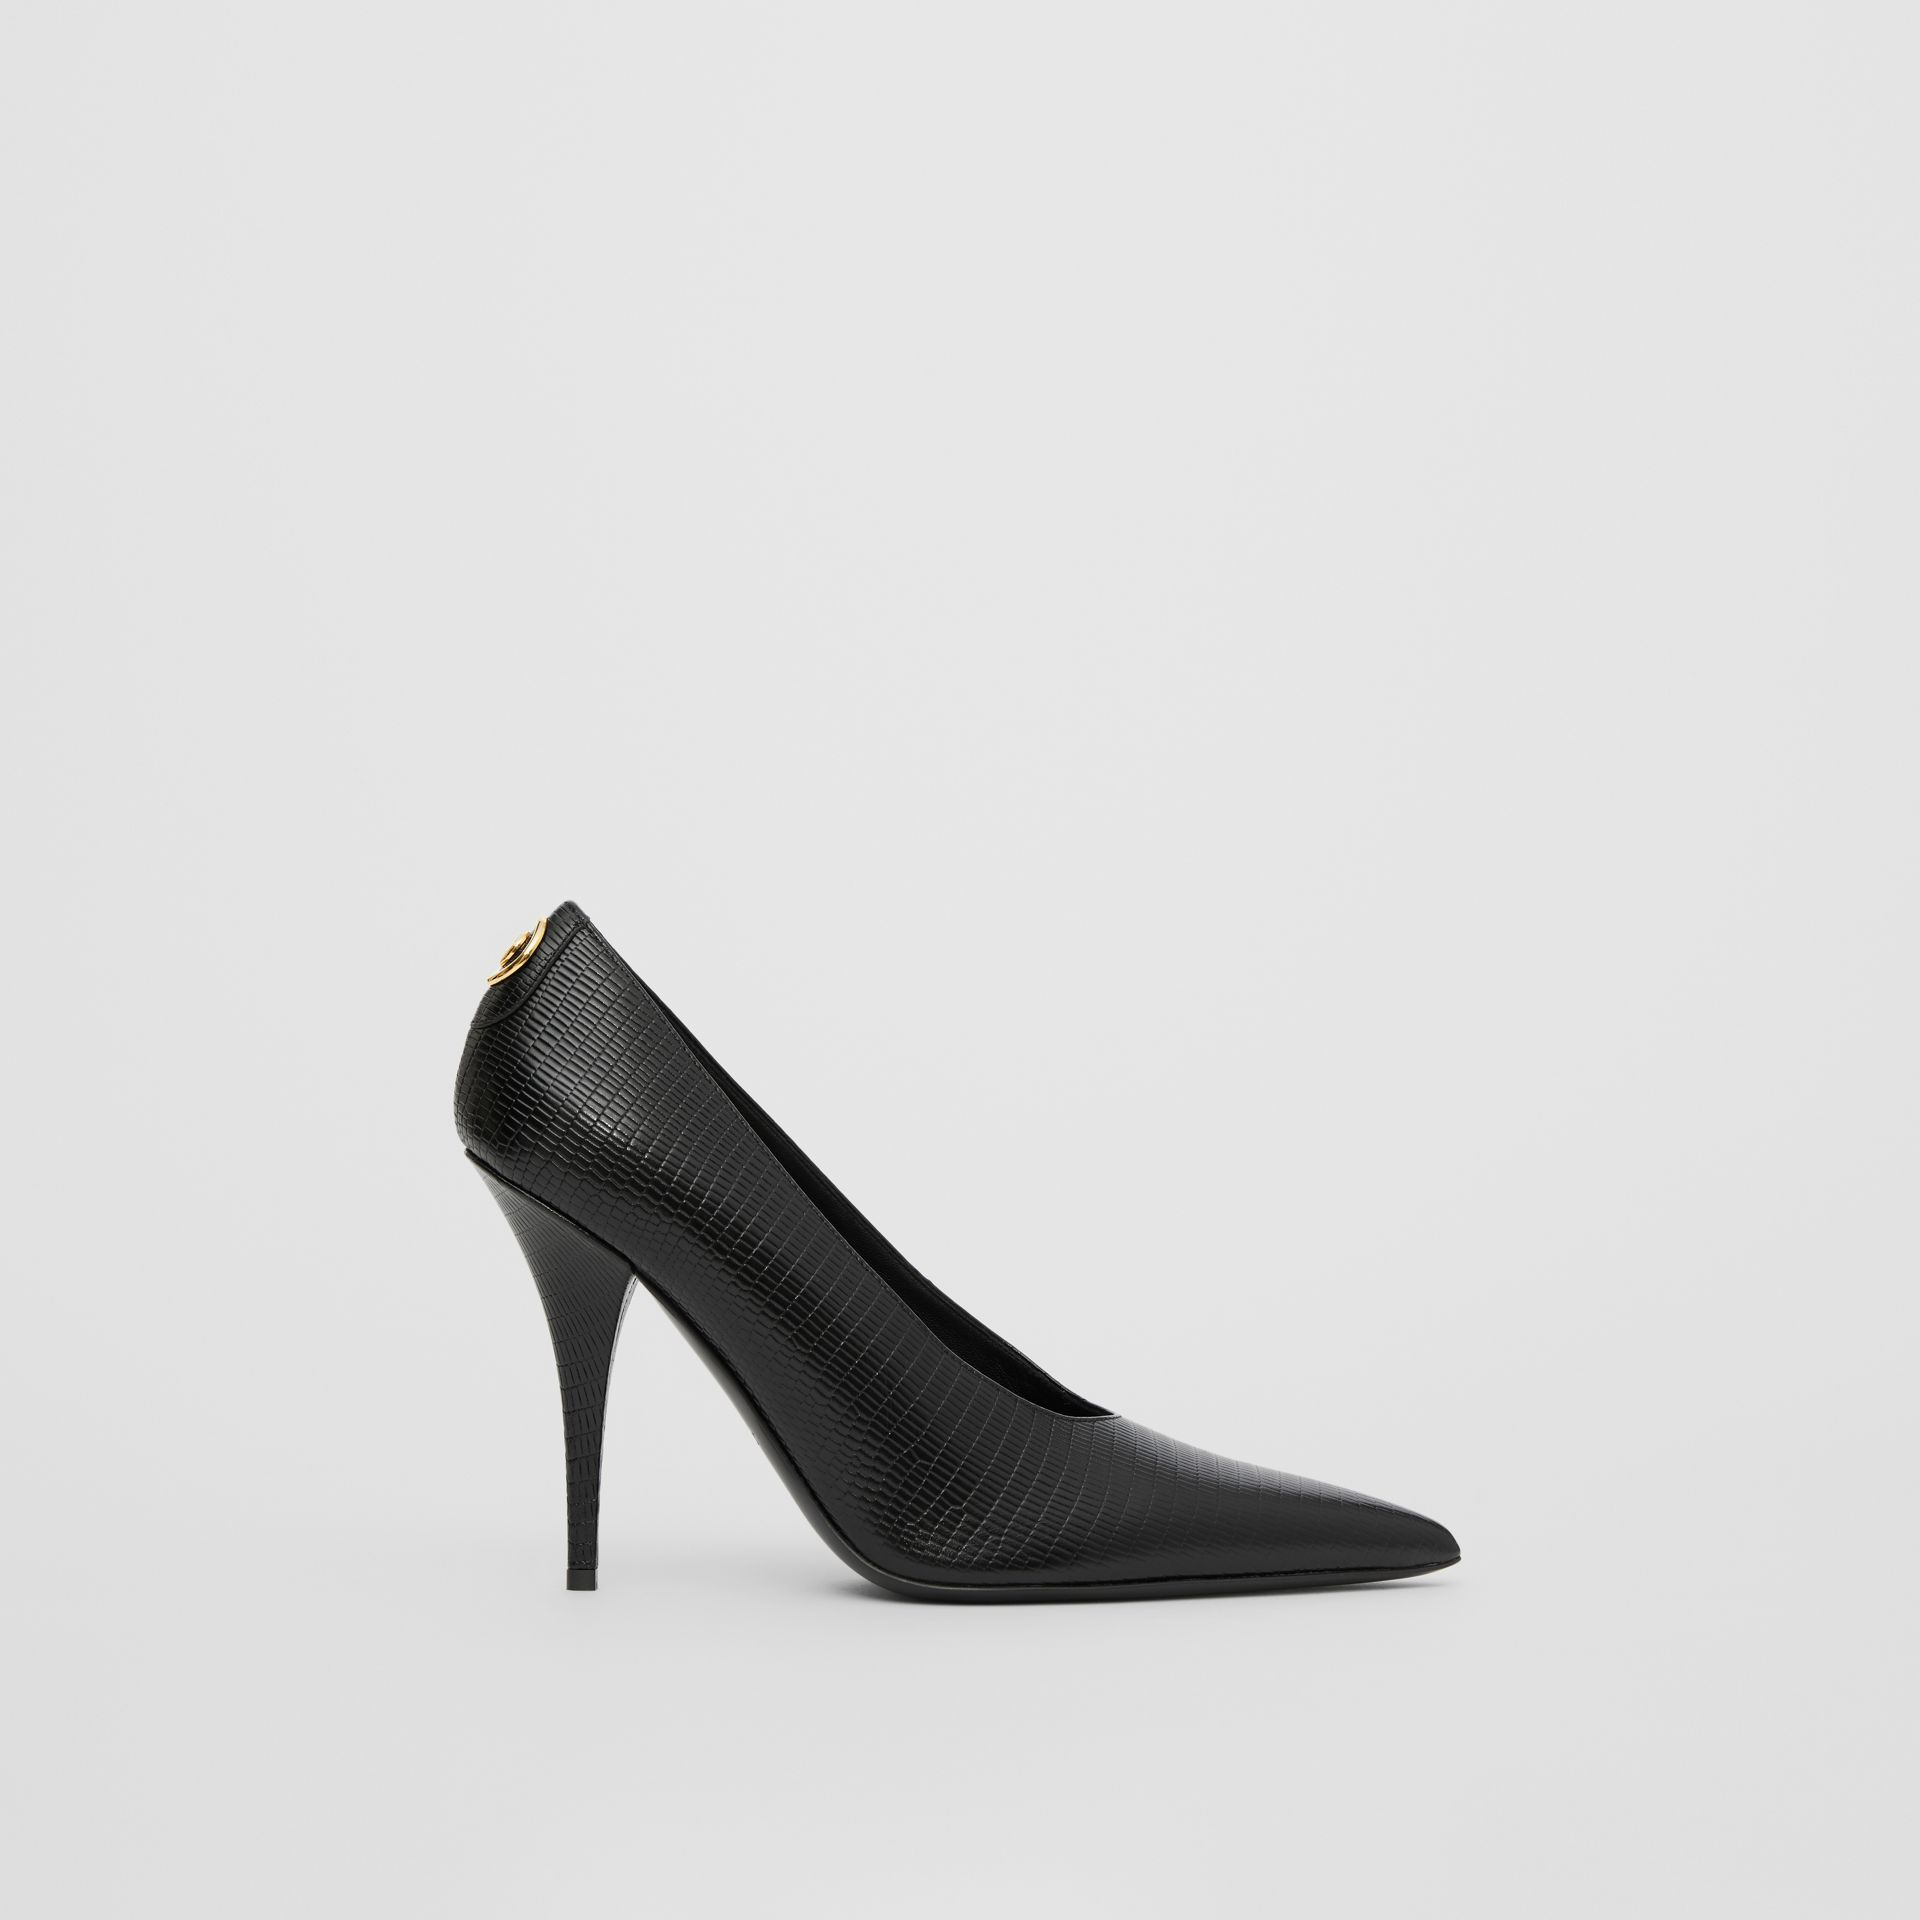 Stud Detail Embossed Leather Point-toe Pumps in Black - Women | Burberry Hong Kong S.A.R - gallery image 5